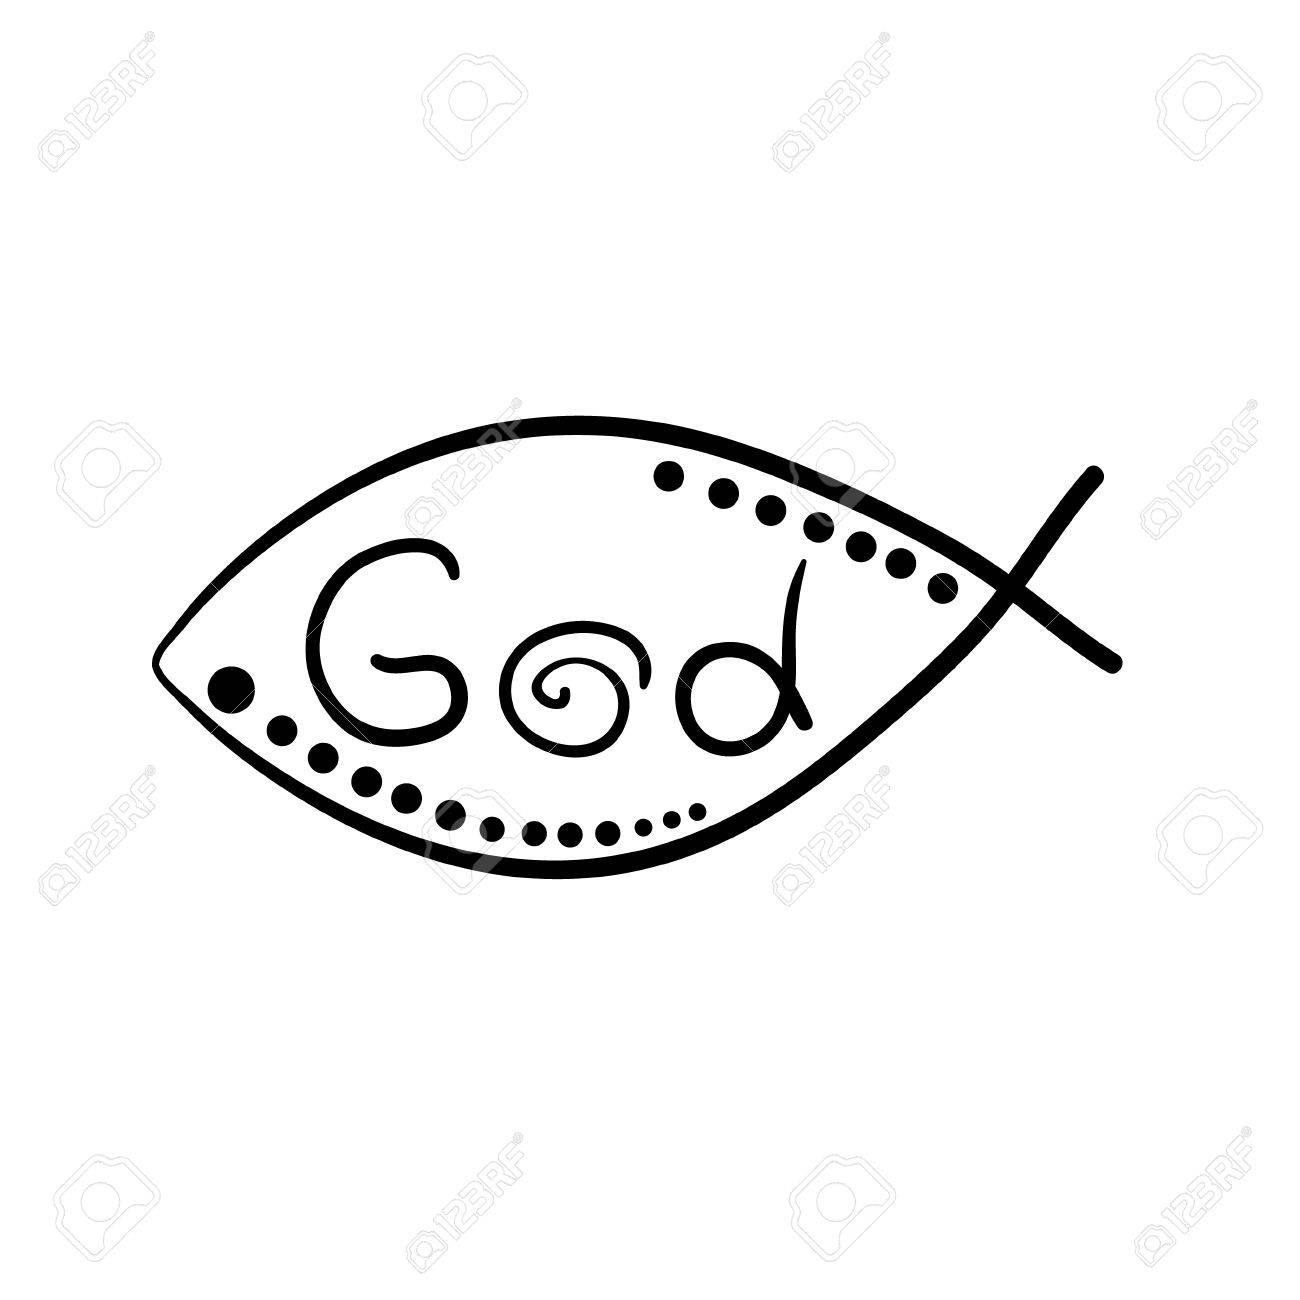 Christian fish symbol with cross vector fish royalty free cliparts christian fish symbol with cross vector fish stock vector 54517002 buycottarizona Gallery